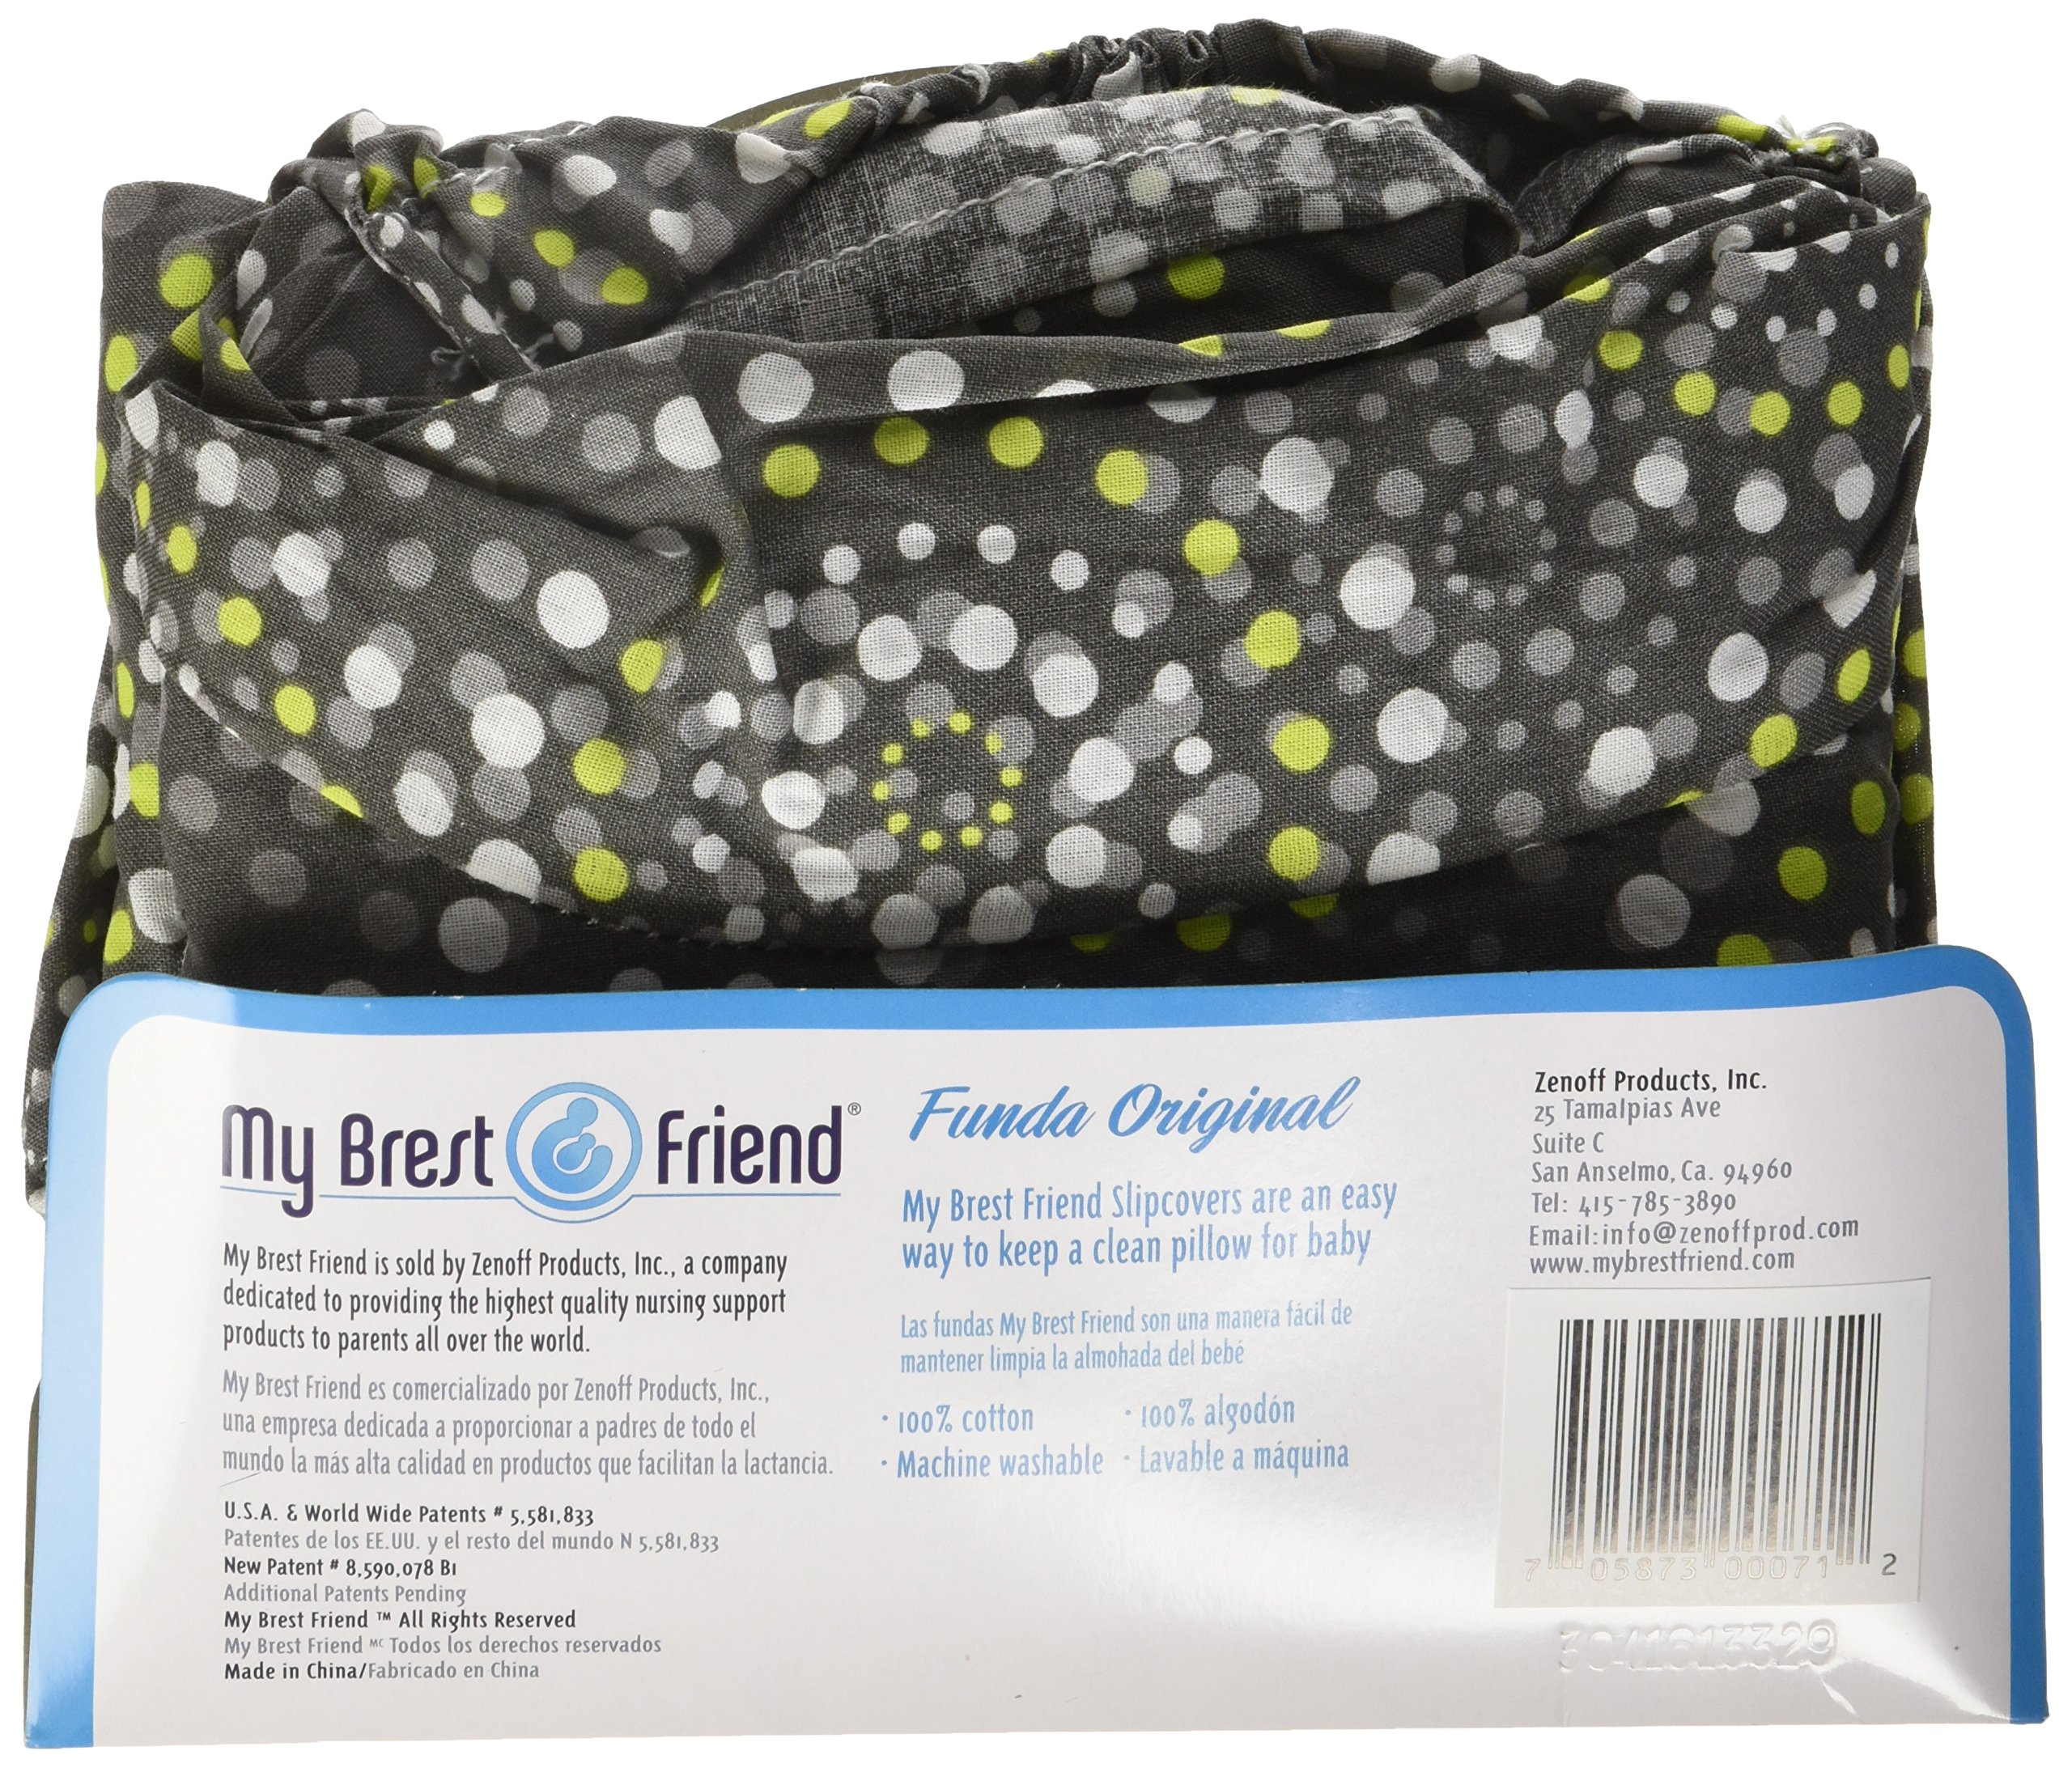 My Brest Friend 100% Cotton Nursing Pillow Original Slipcover – Machine Washable Breastfeeding Cushion Cover - pillow not included, Fireworks by My Brest Friend (Image #3)